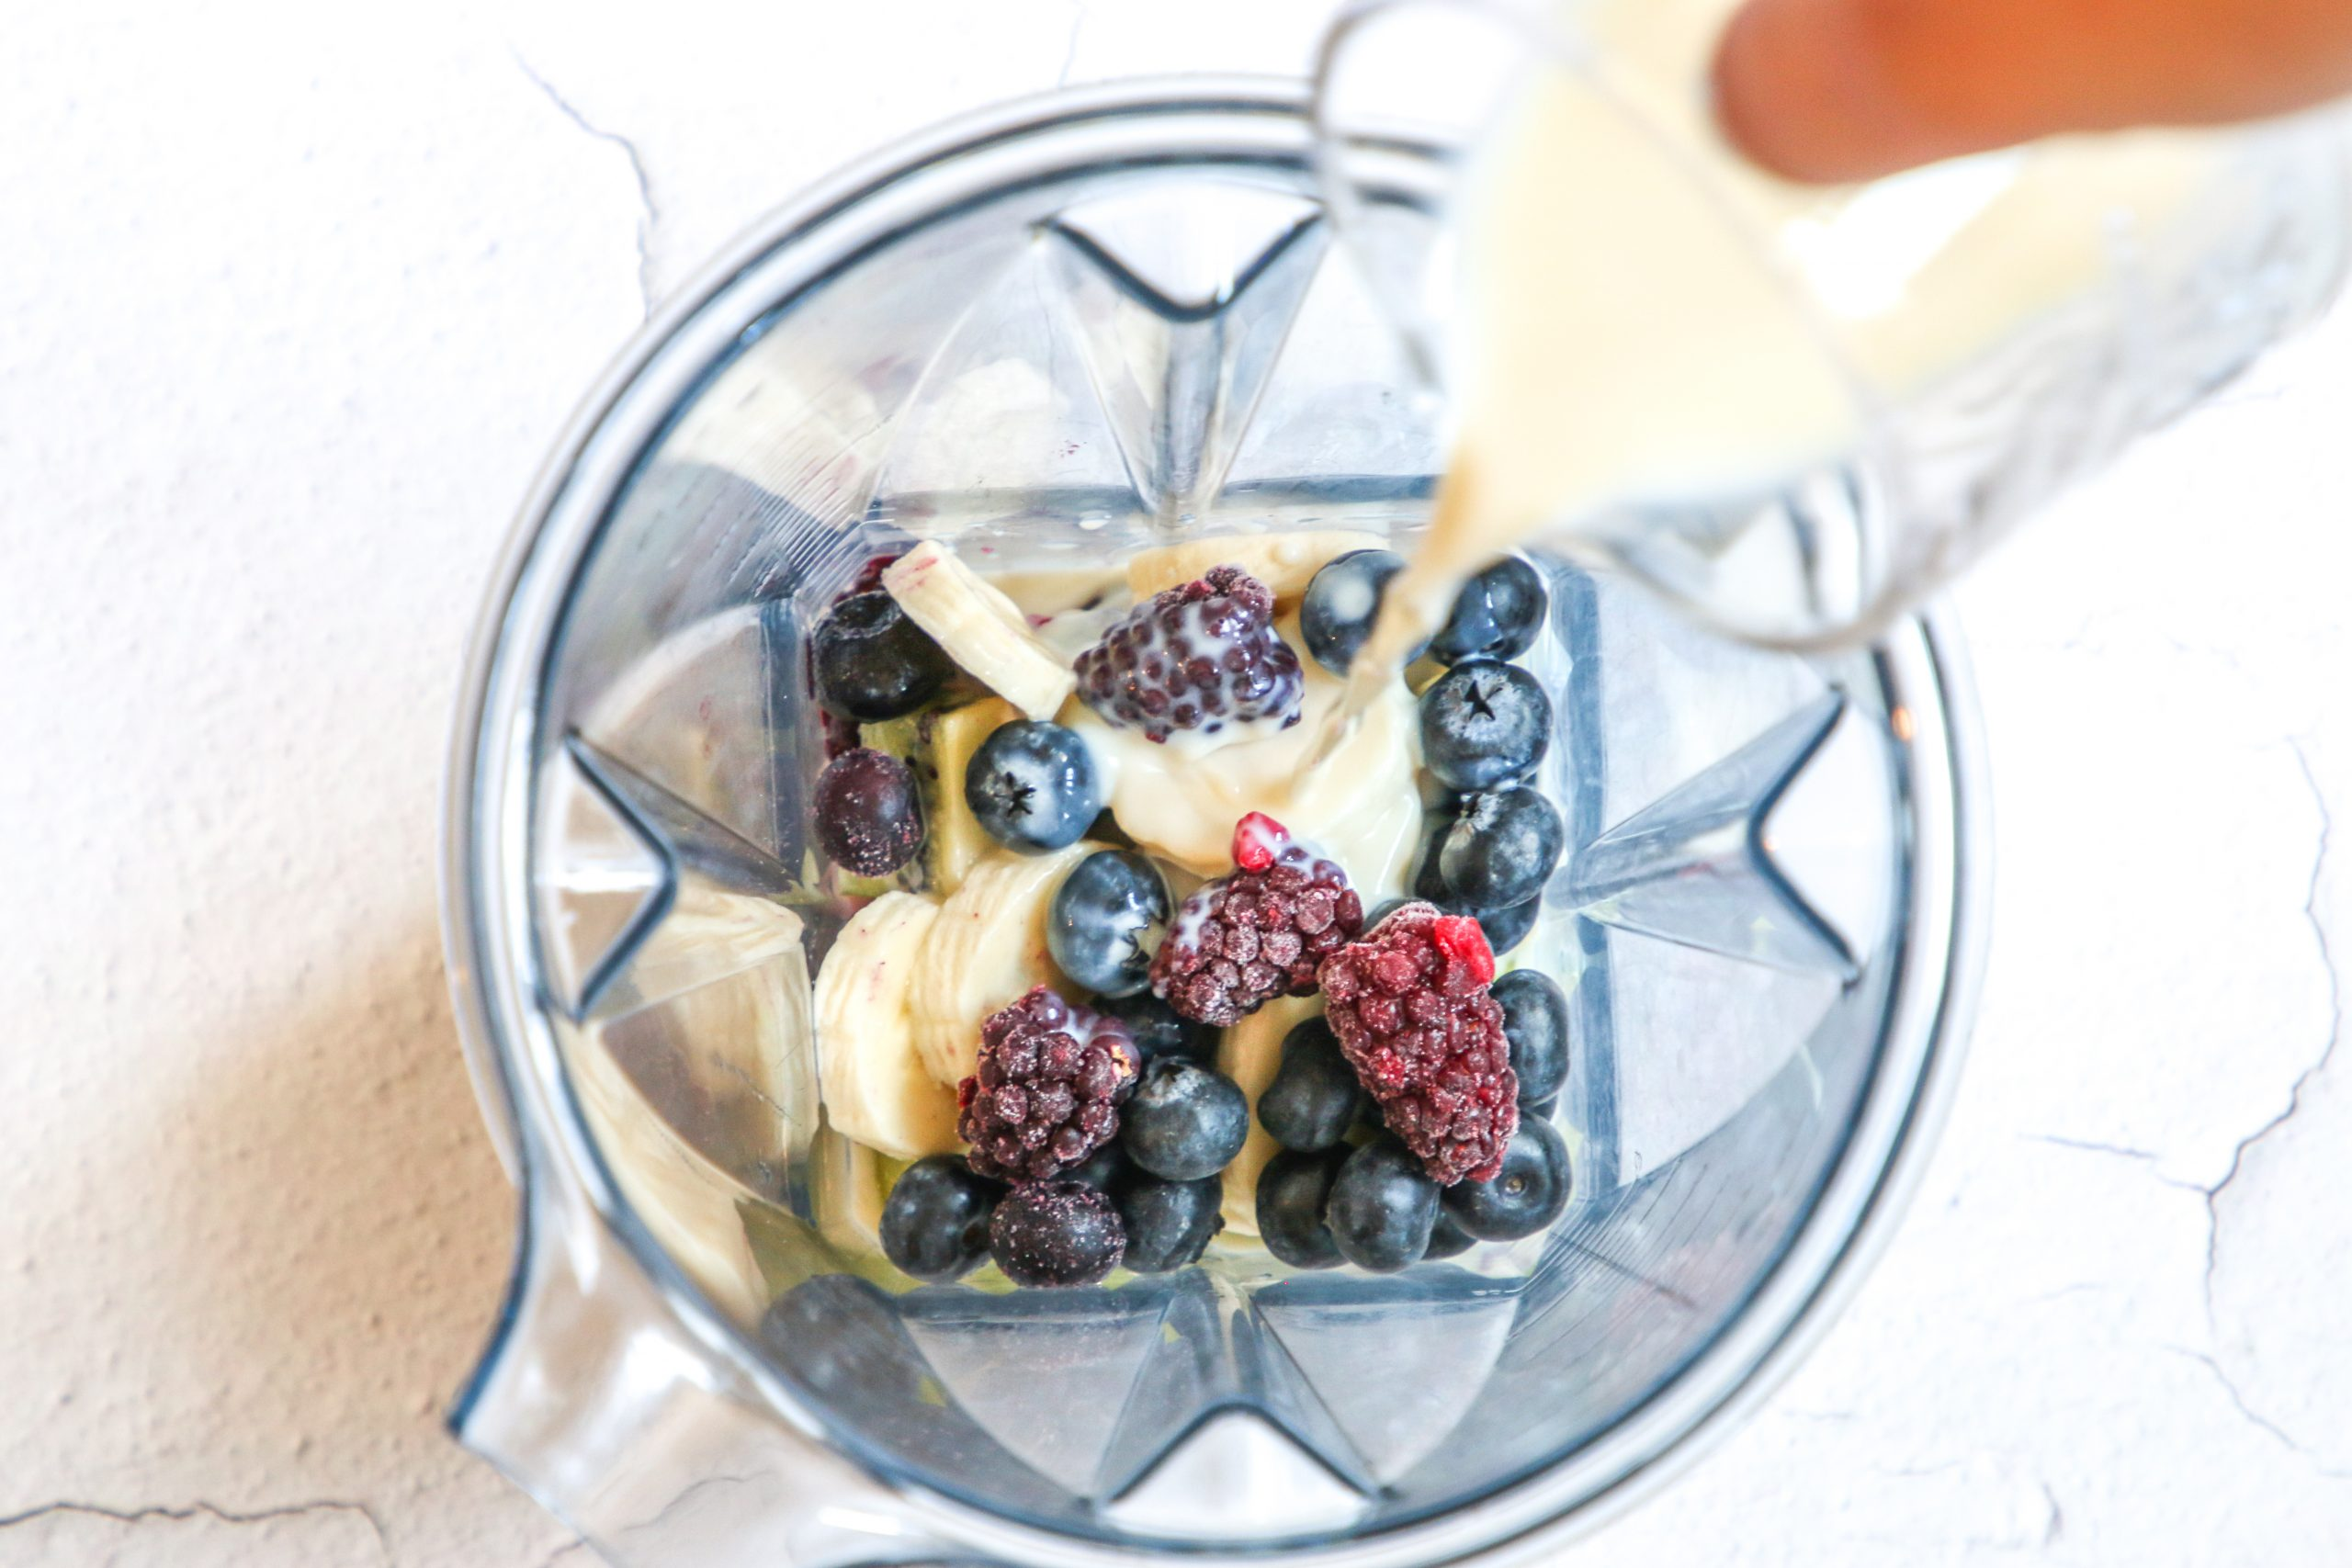 picture of banana and berries in a blender with almond milk being poured in